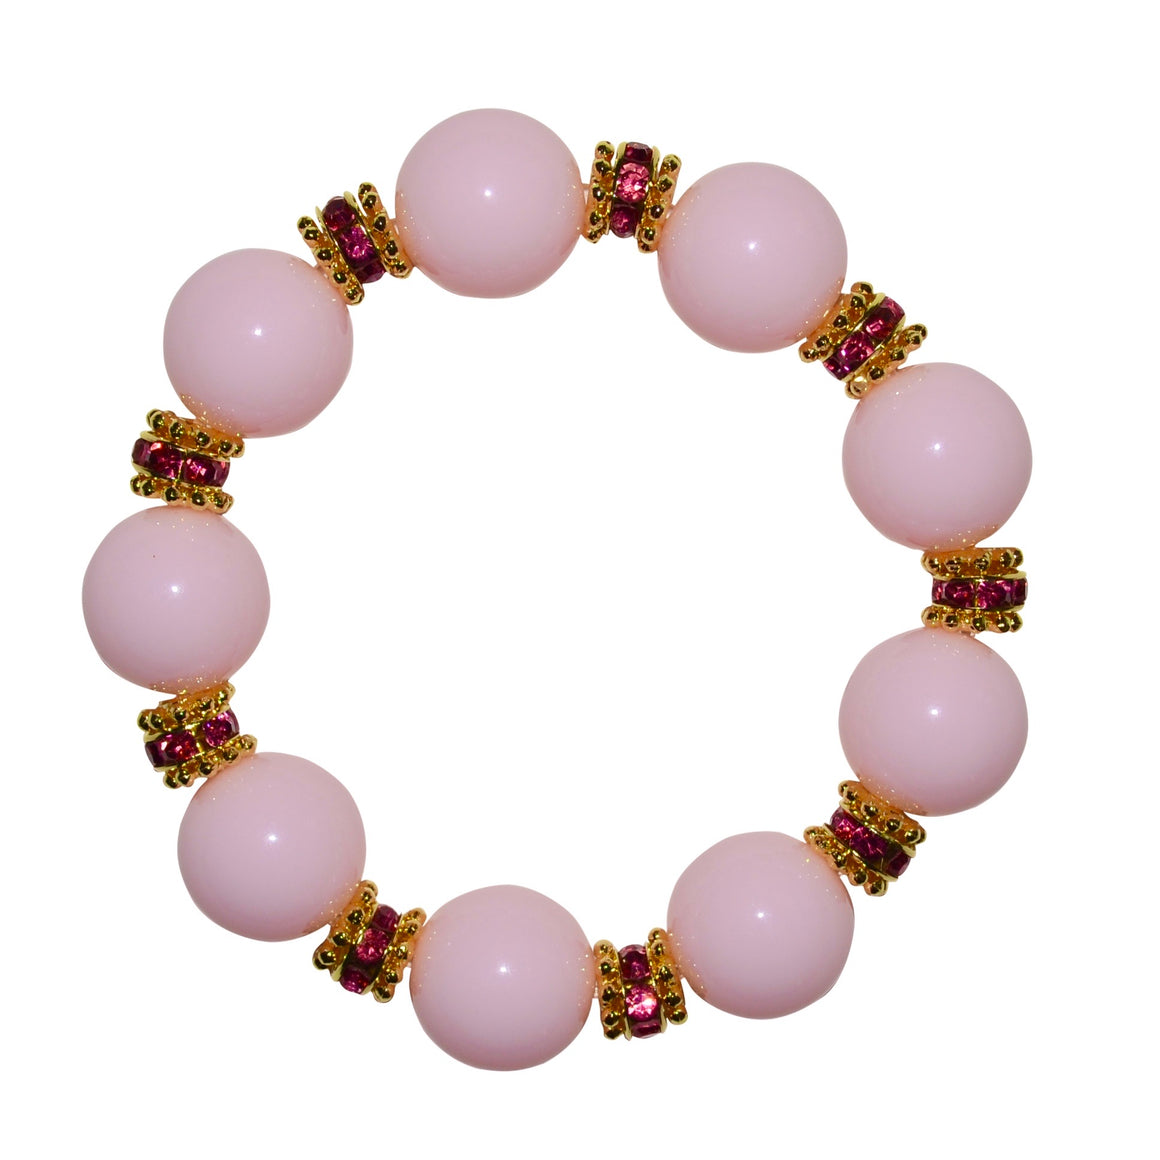 ELLIS ANYTIME BANGLE IN LIGHT PINK